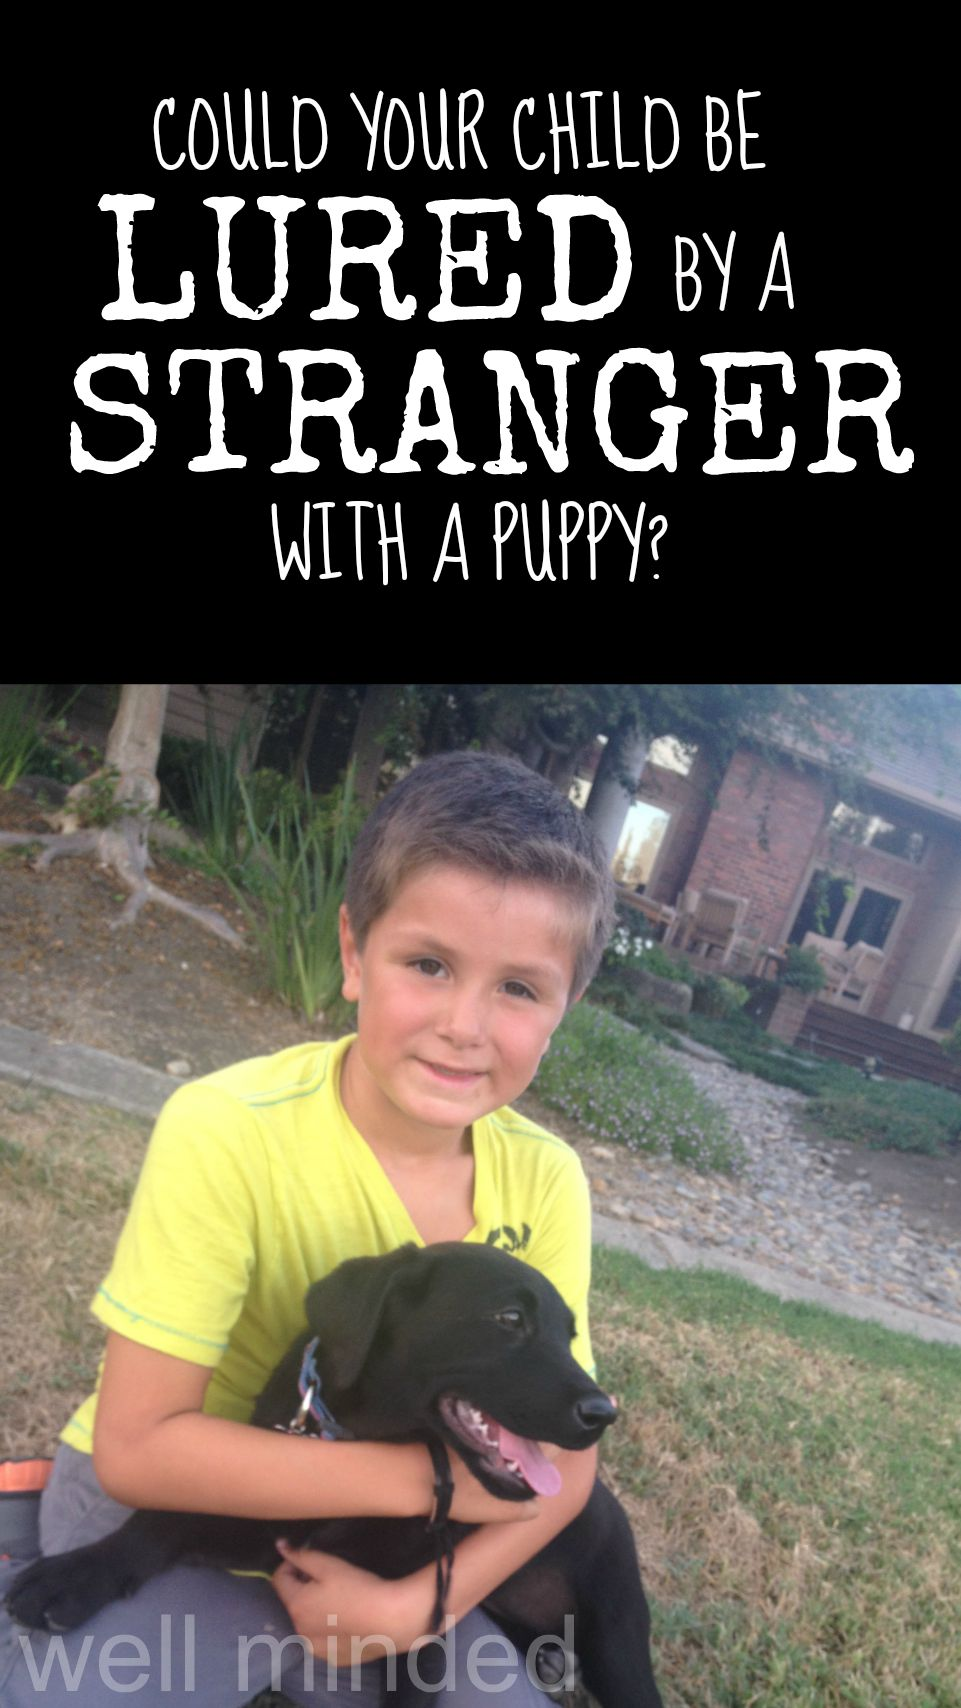 could-your-child-be-lured-by-a-stranger-with-a-puppy.jpg